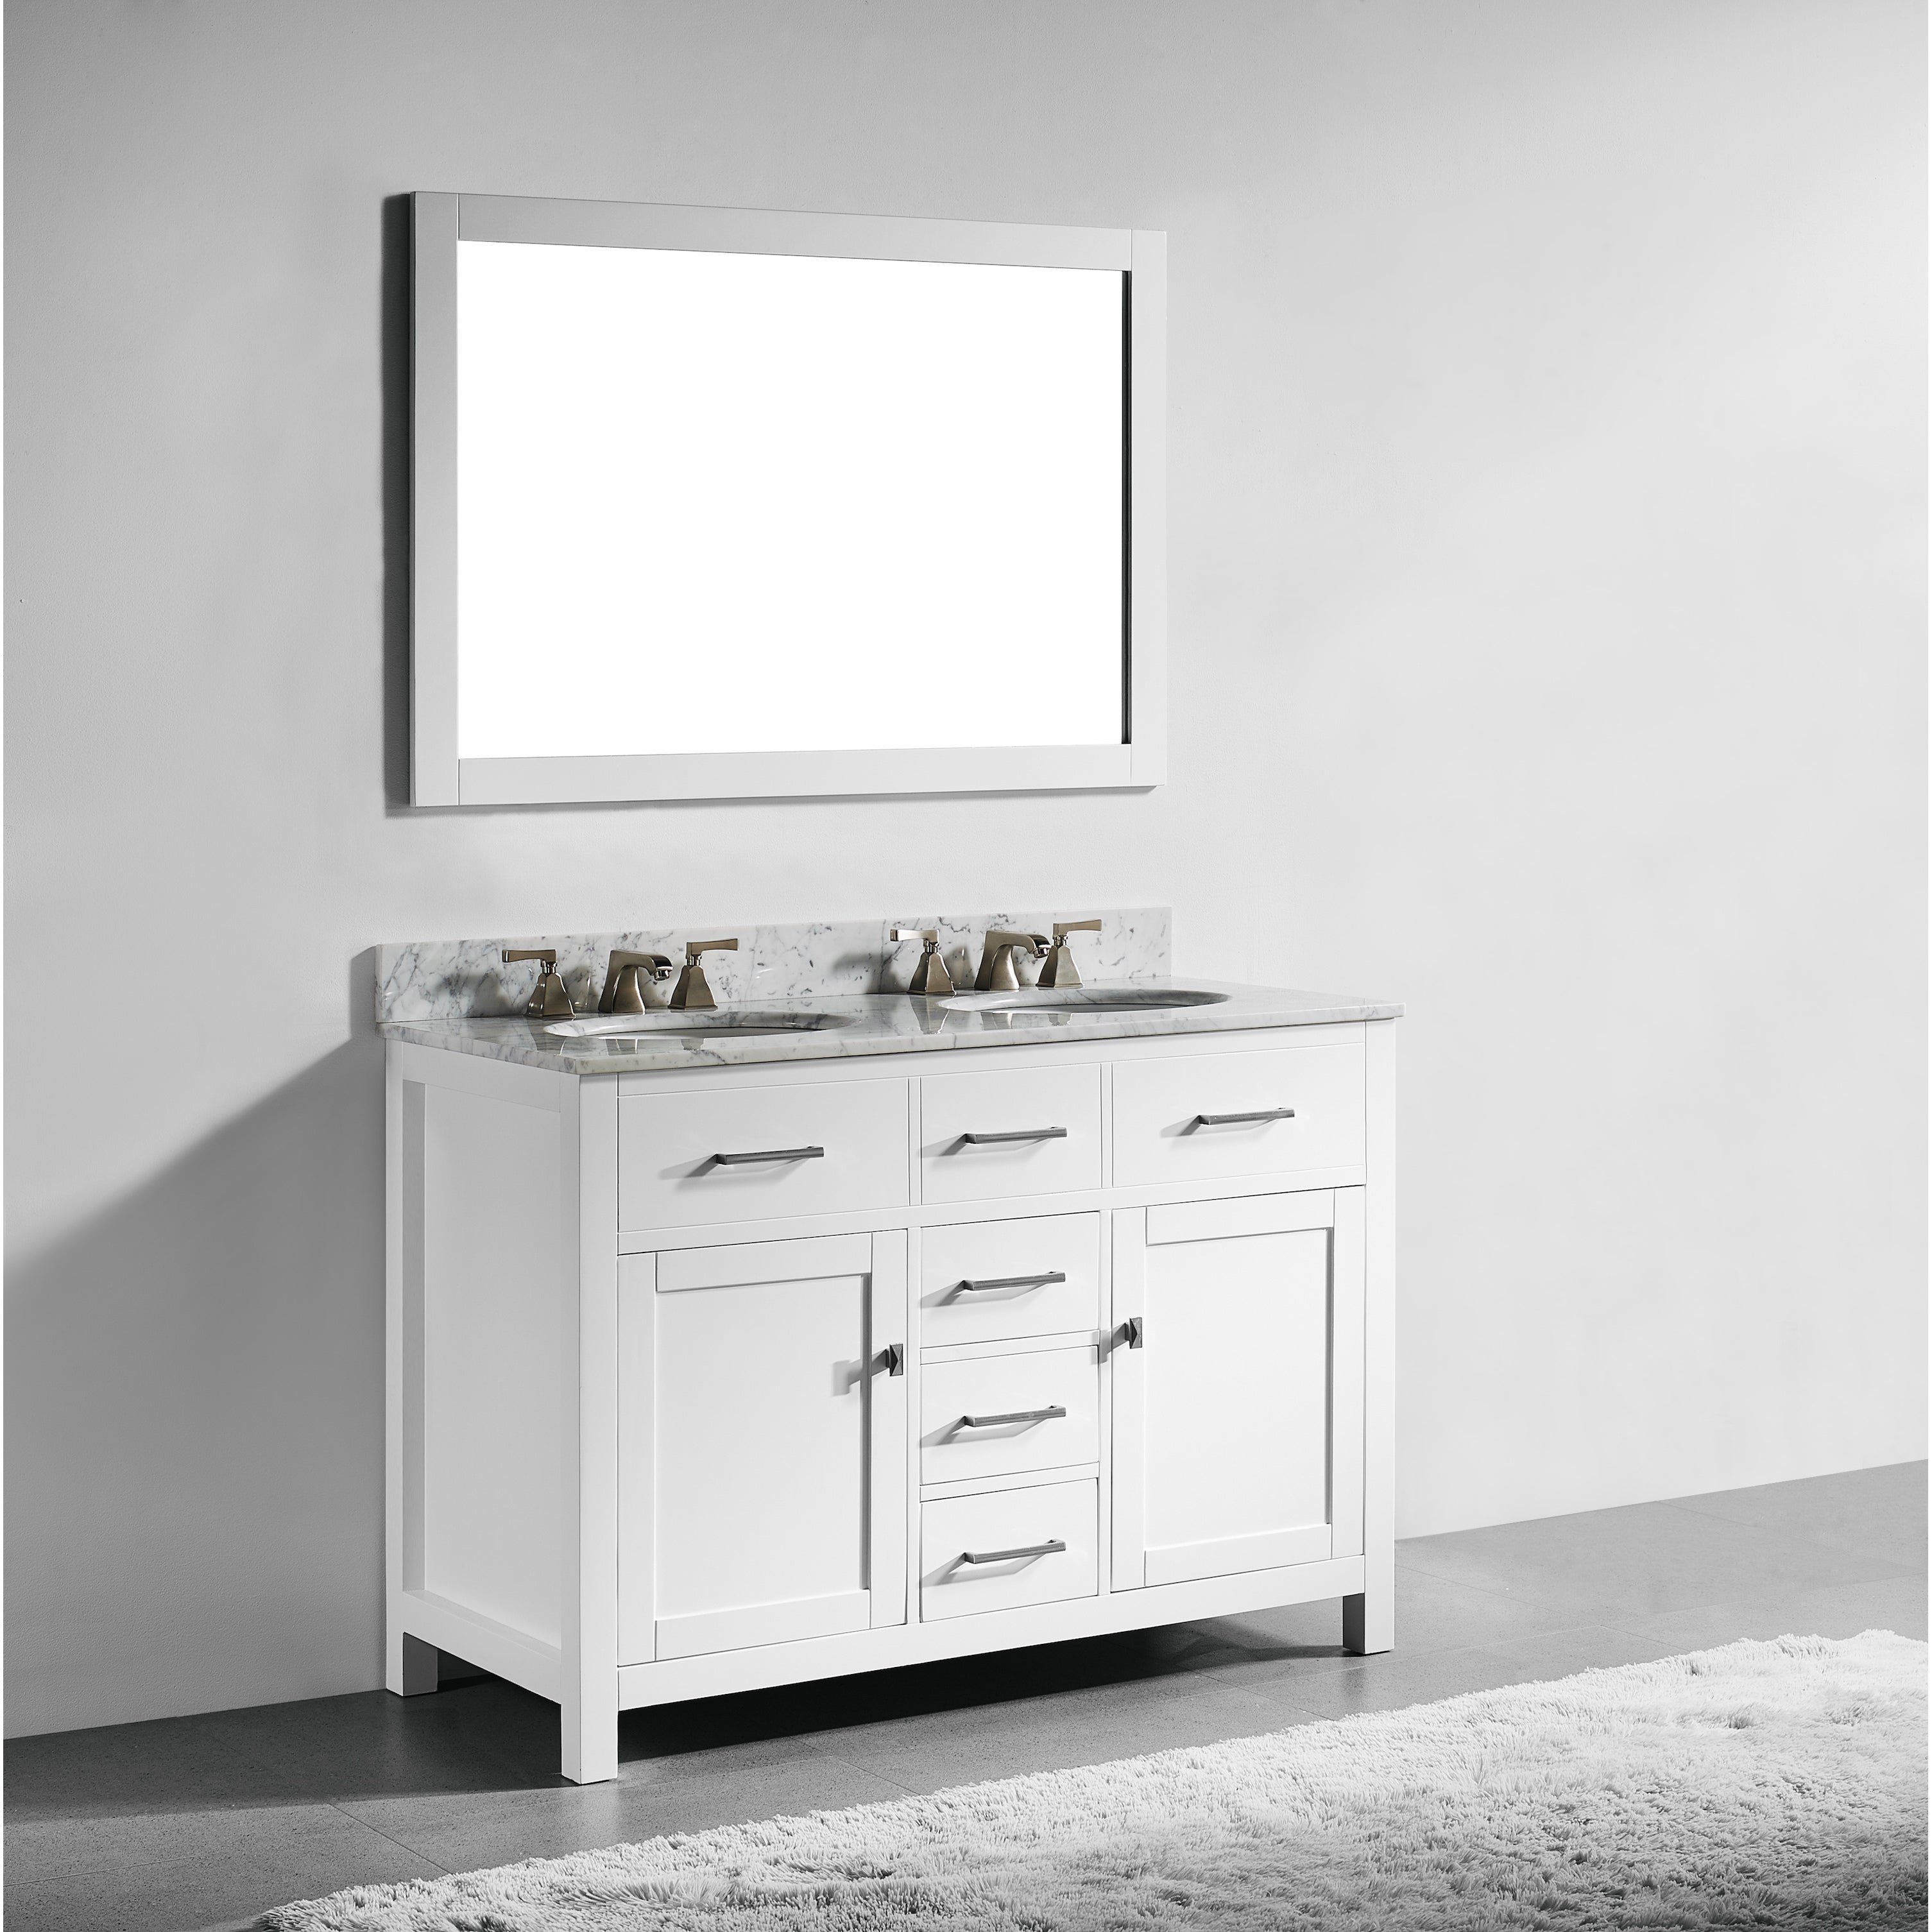 Shop 48 inch white finish solid wood double sink bathroom vanity with soft closing drawers and mirror free shipping today overstock com 12382377